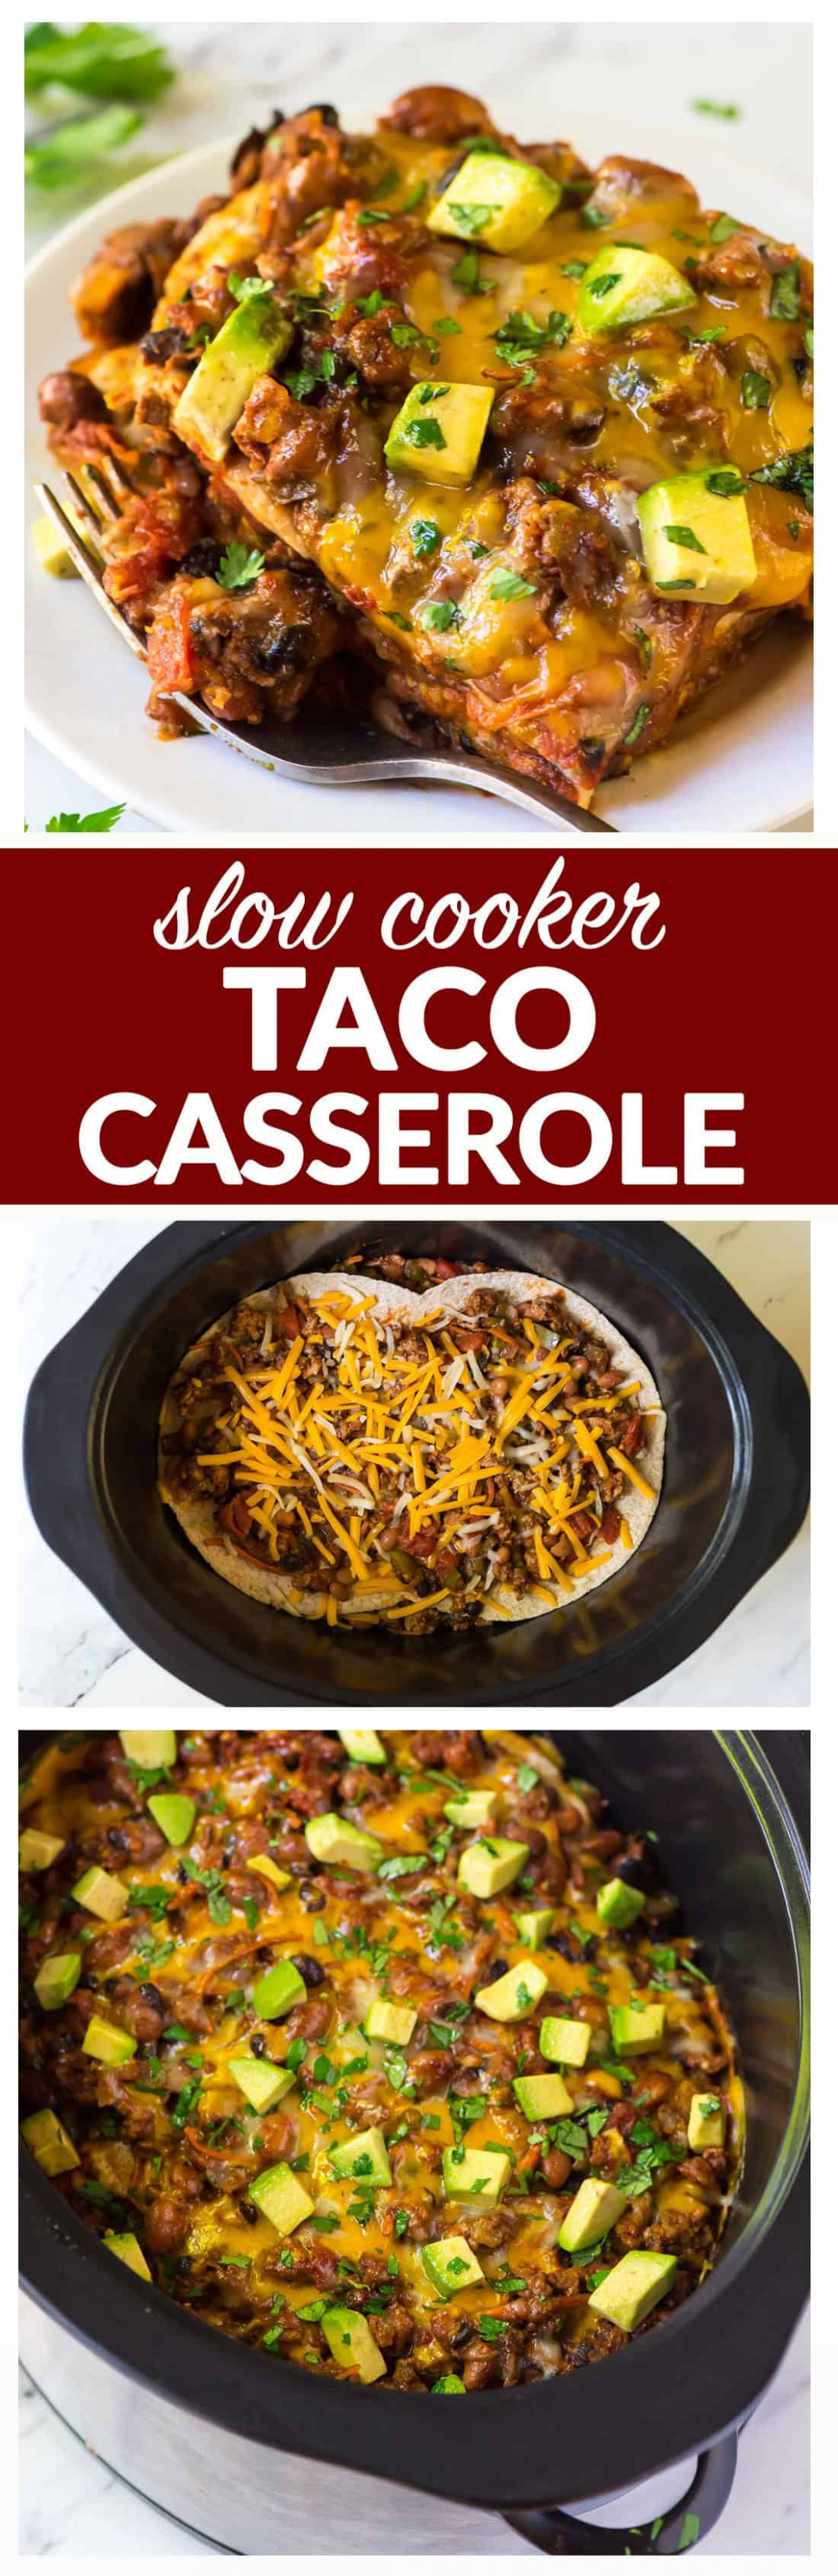 Taco Casserole   Healthy Slow Cooker Recipe   Well Plated ...